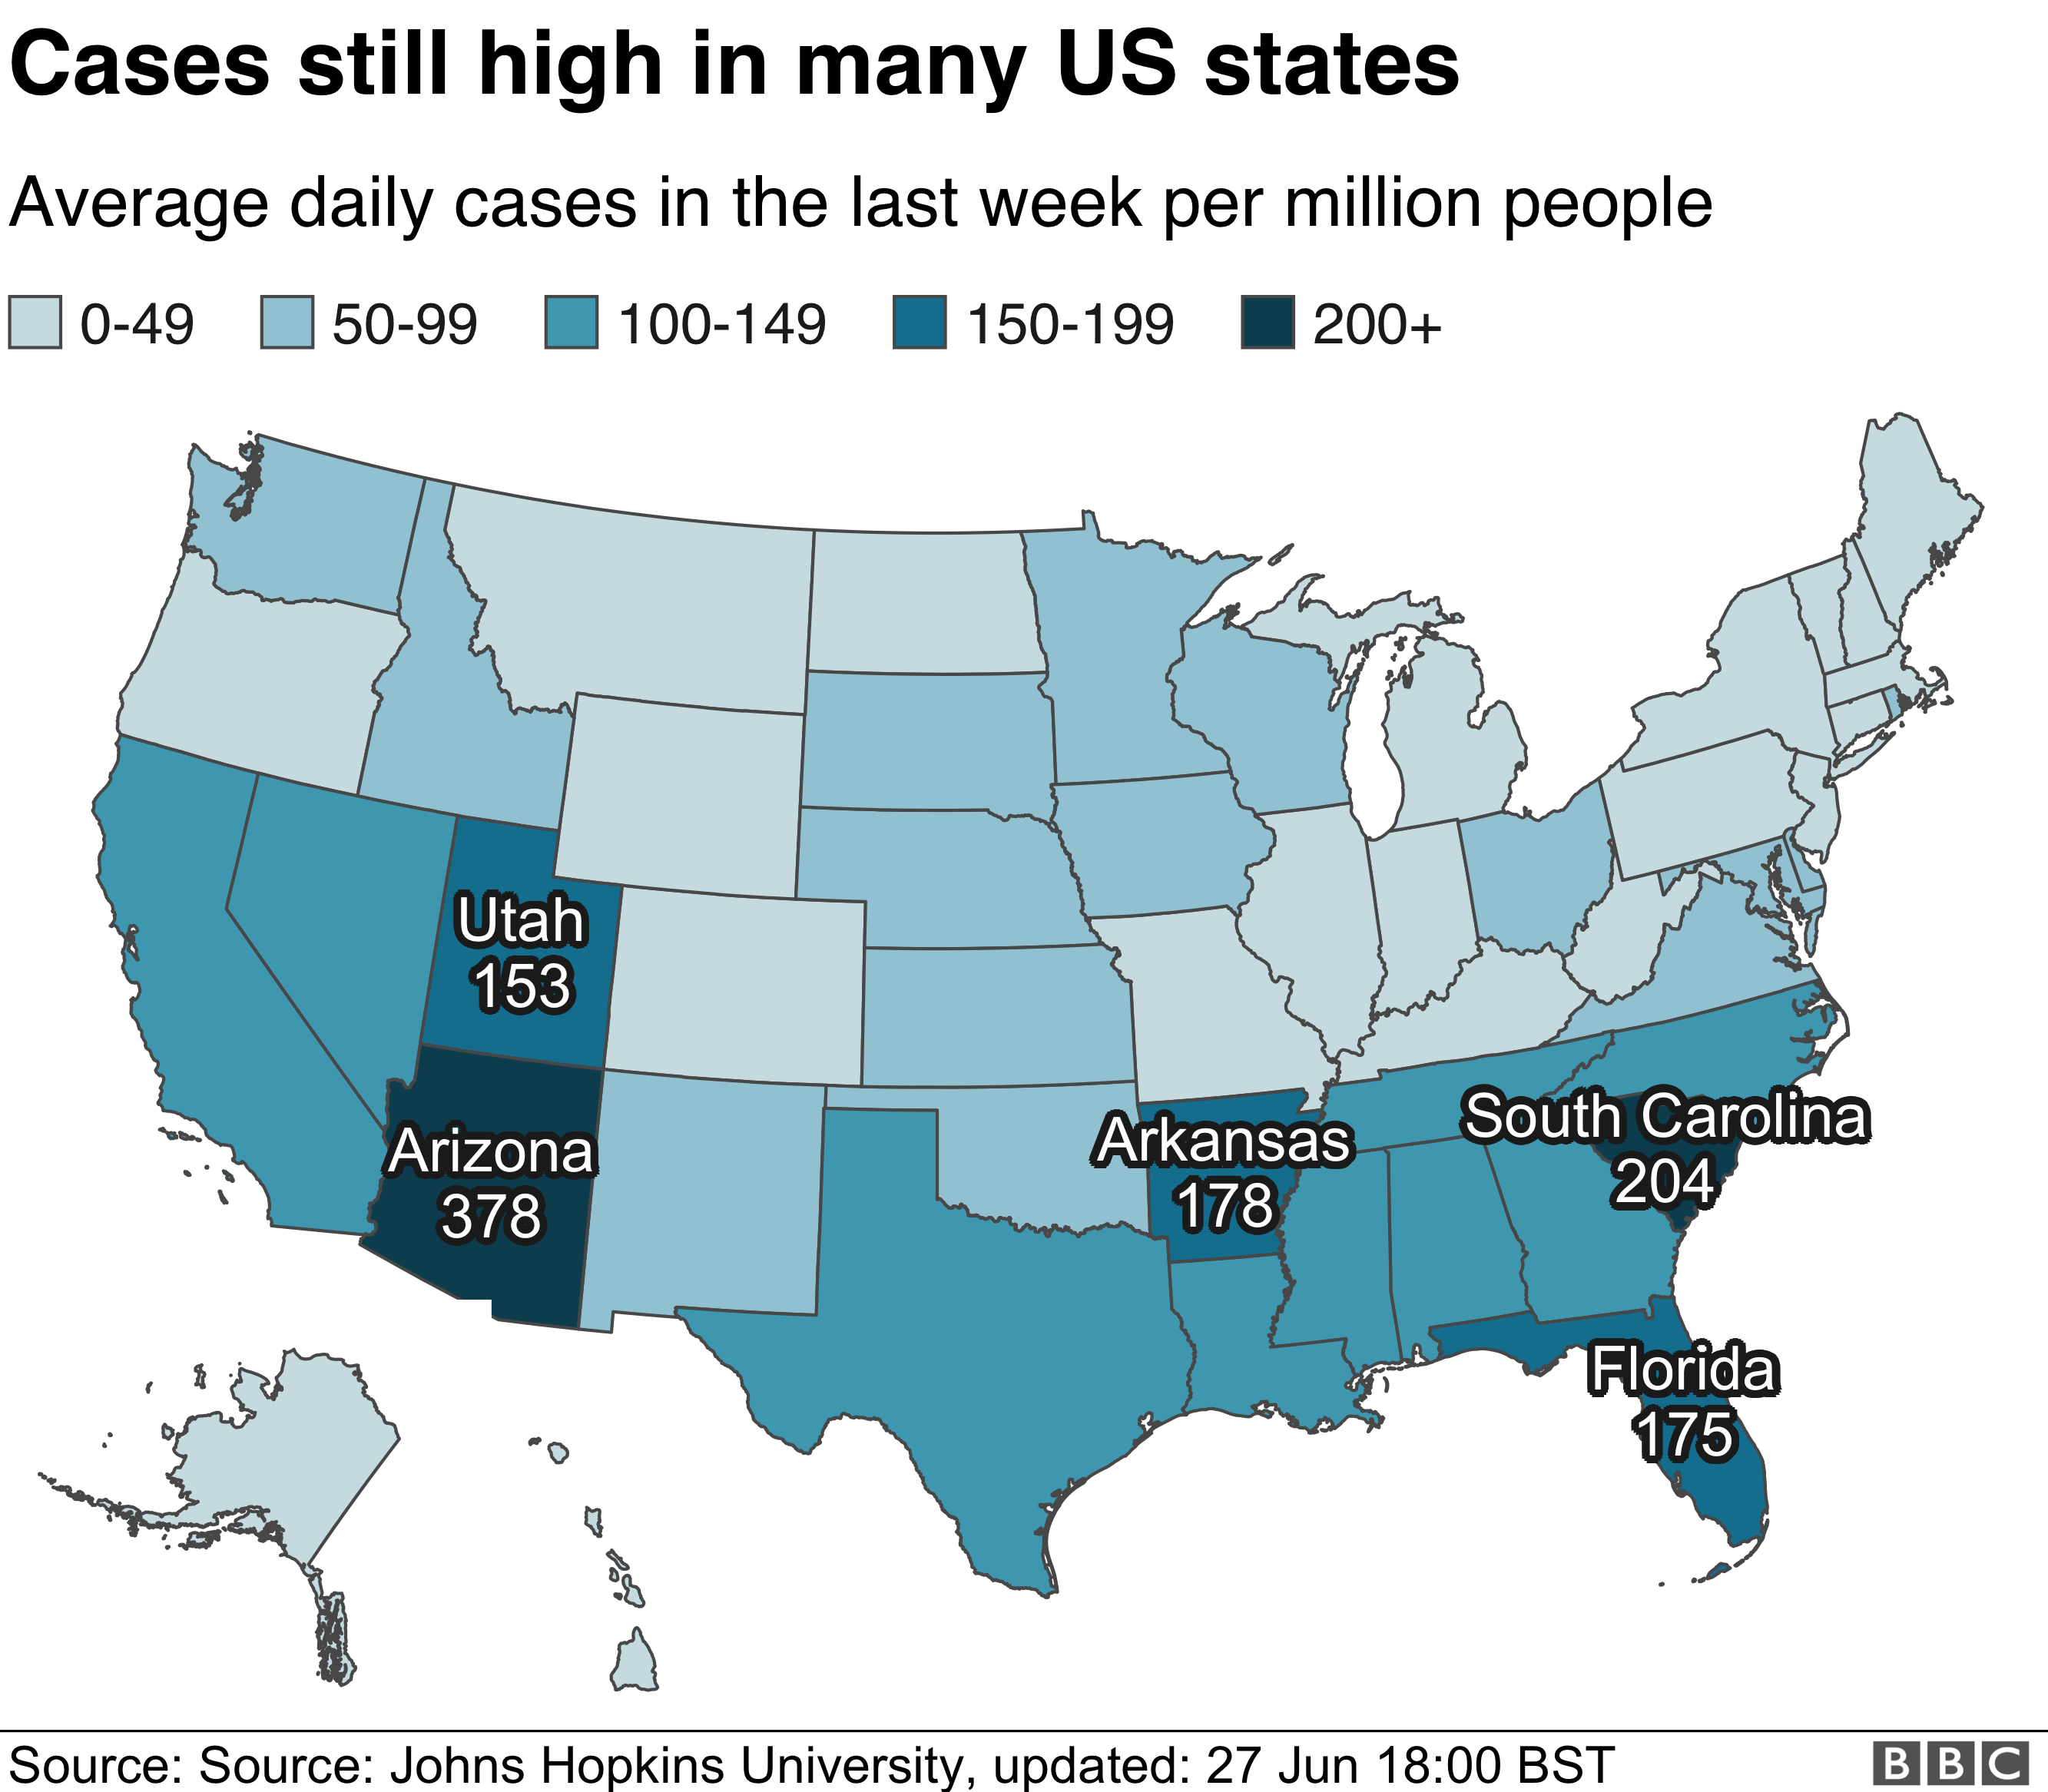 Map showing average daily cases in the US